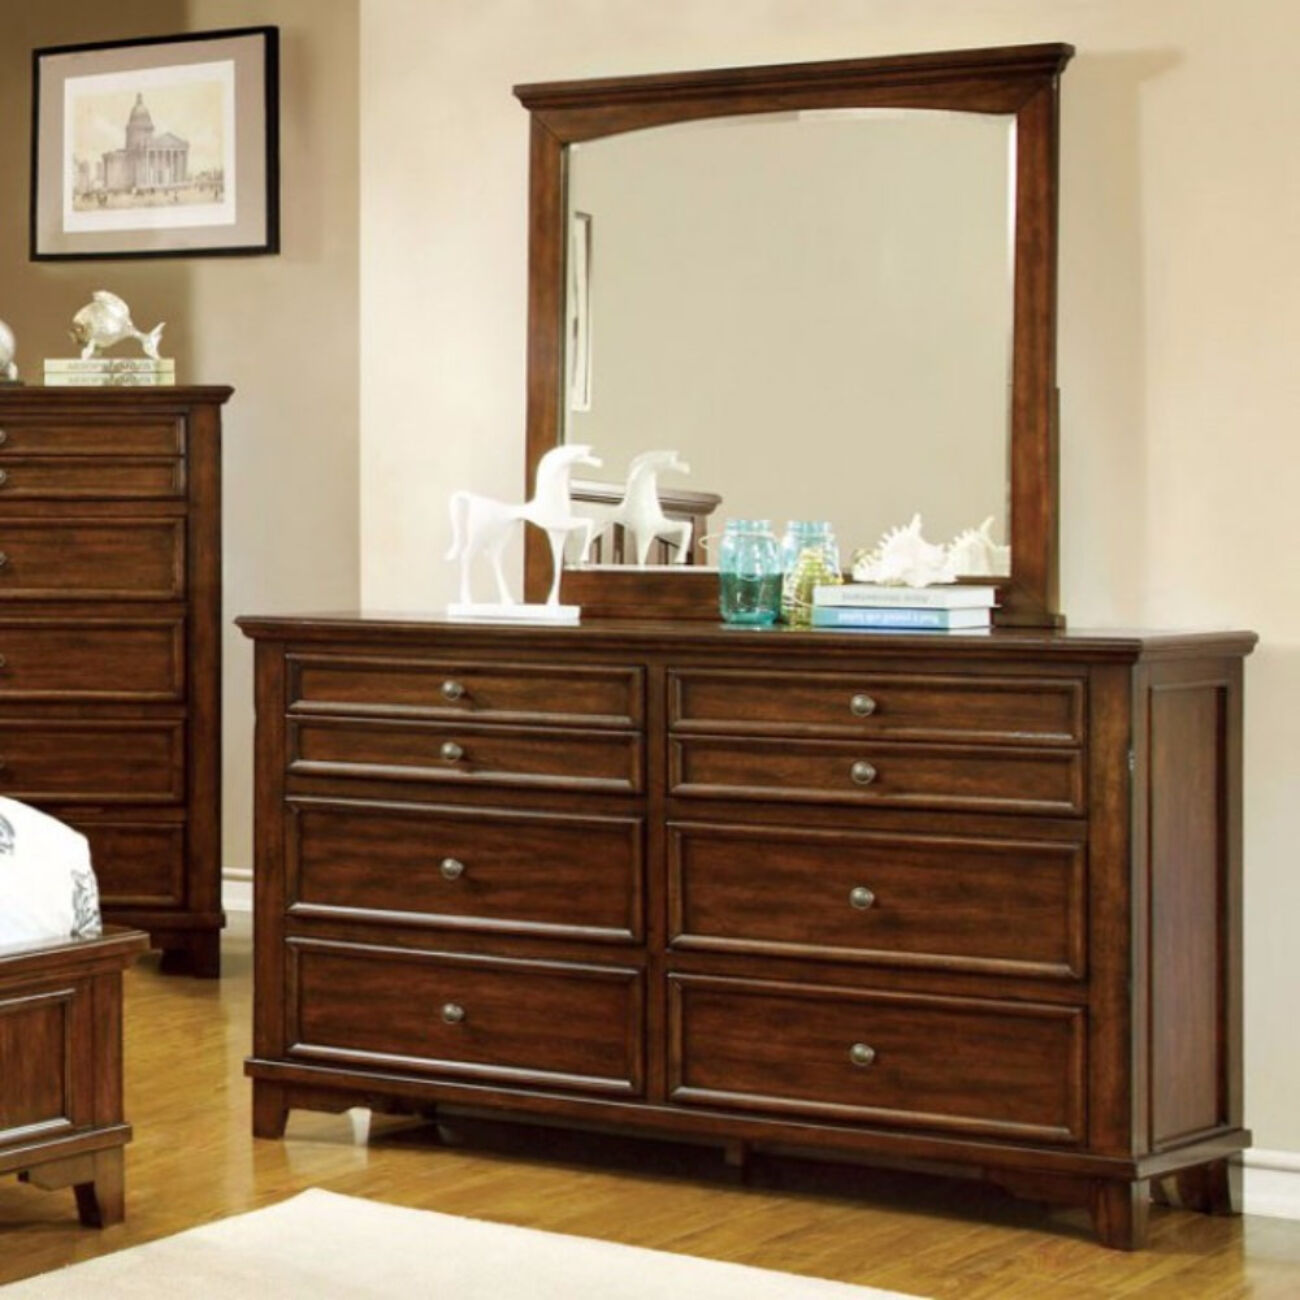 Pristine And Minimal Wooden Dresser In Transitional Style, Brown Cherry